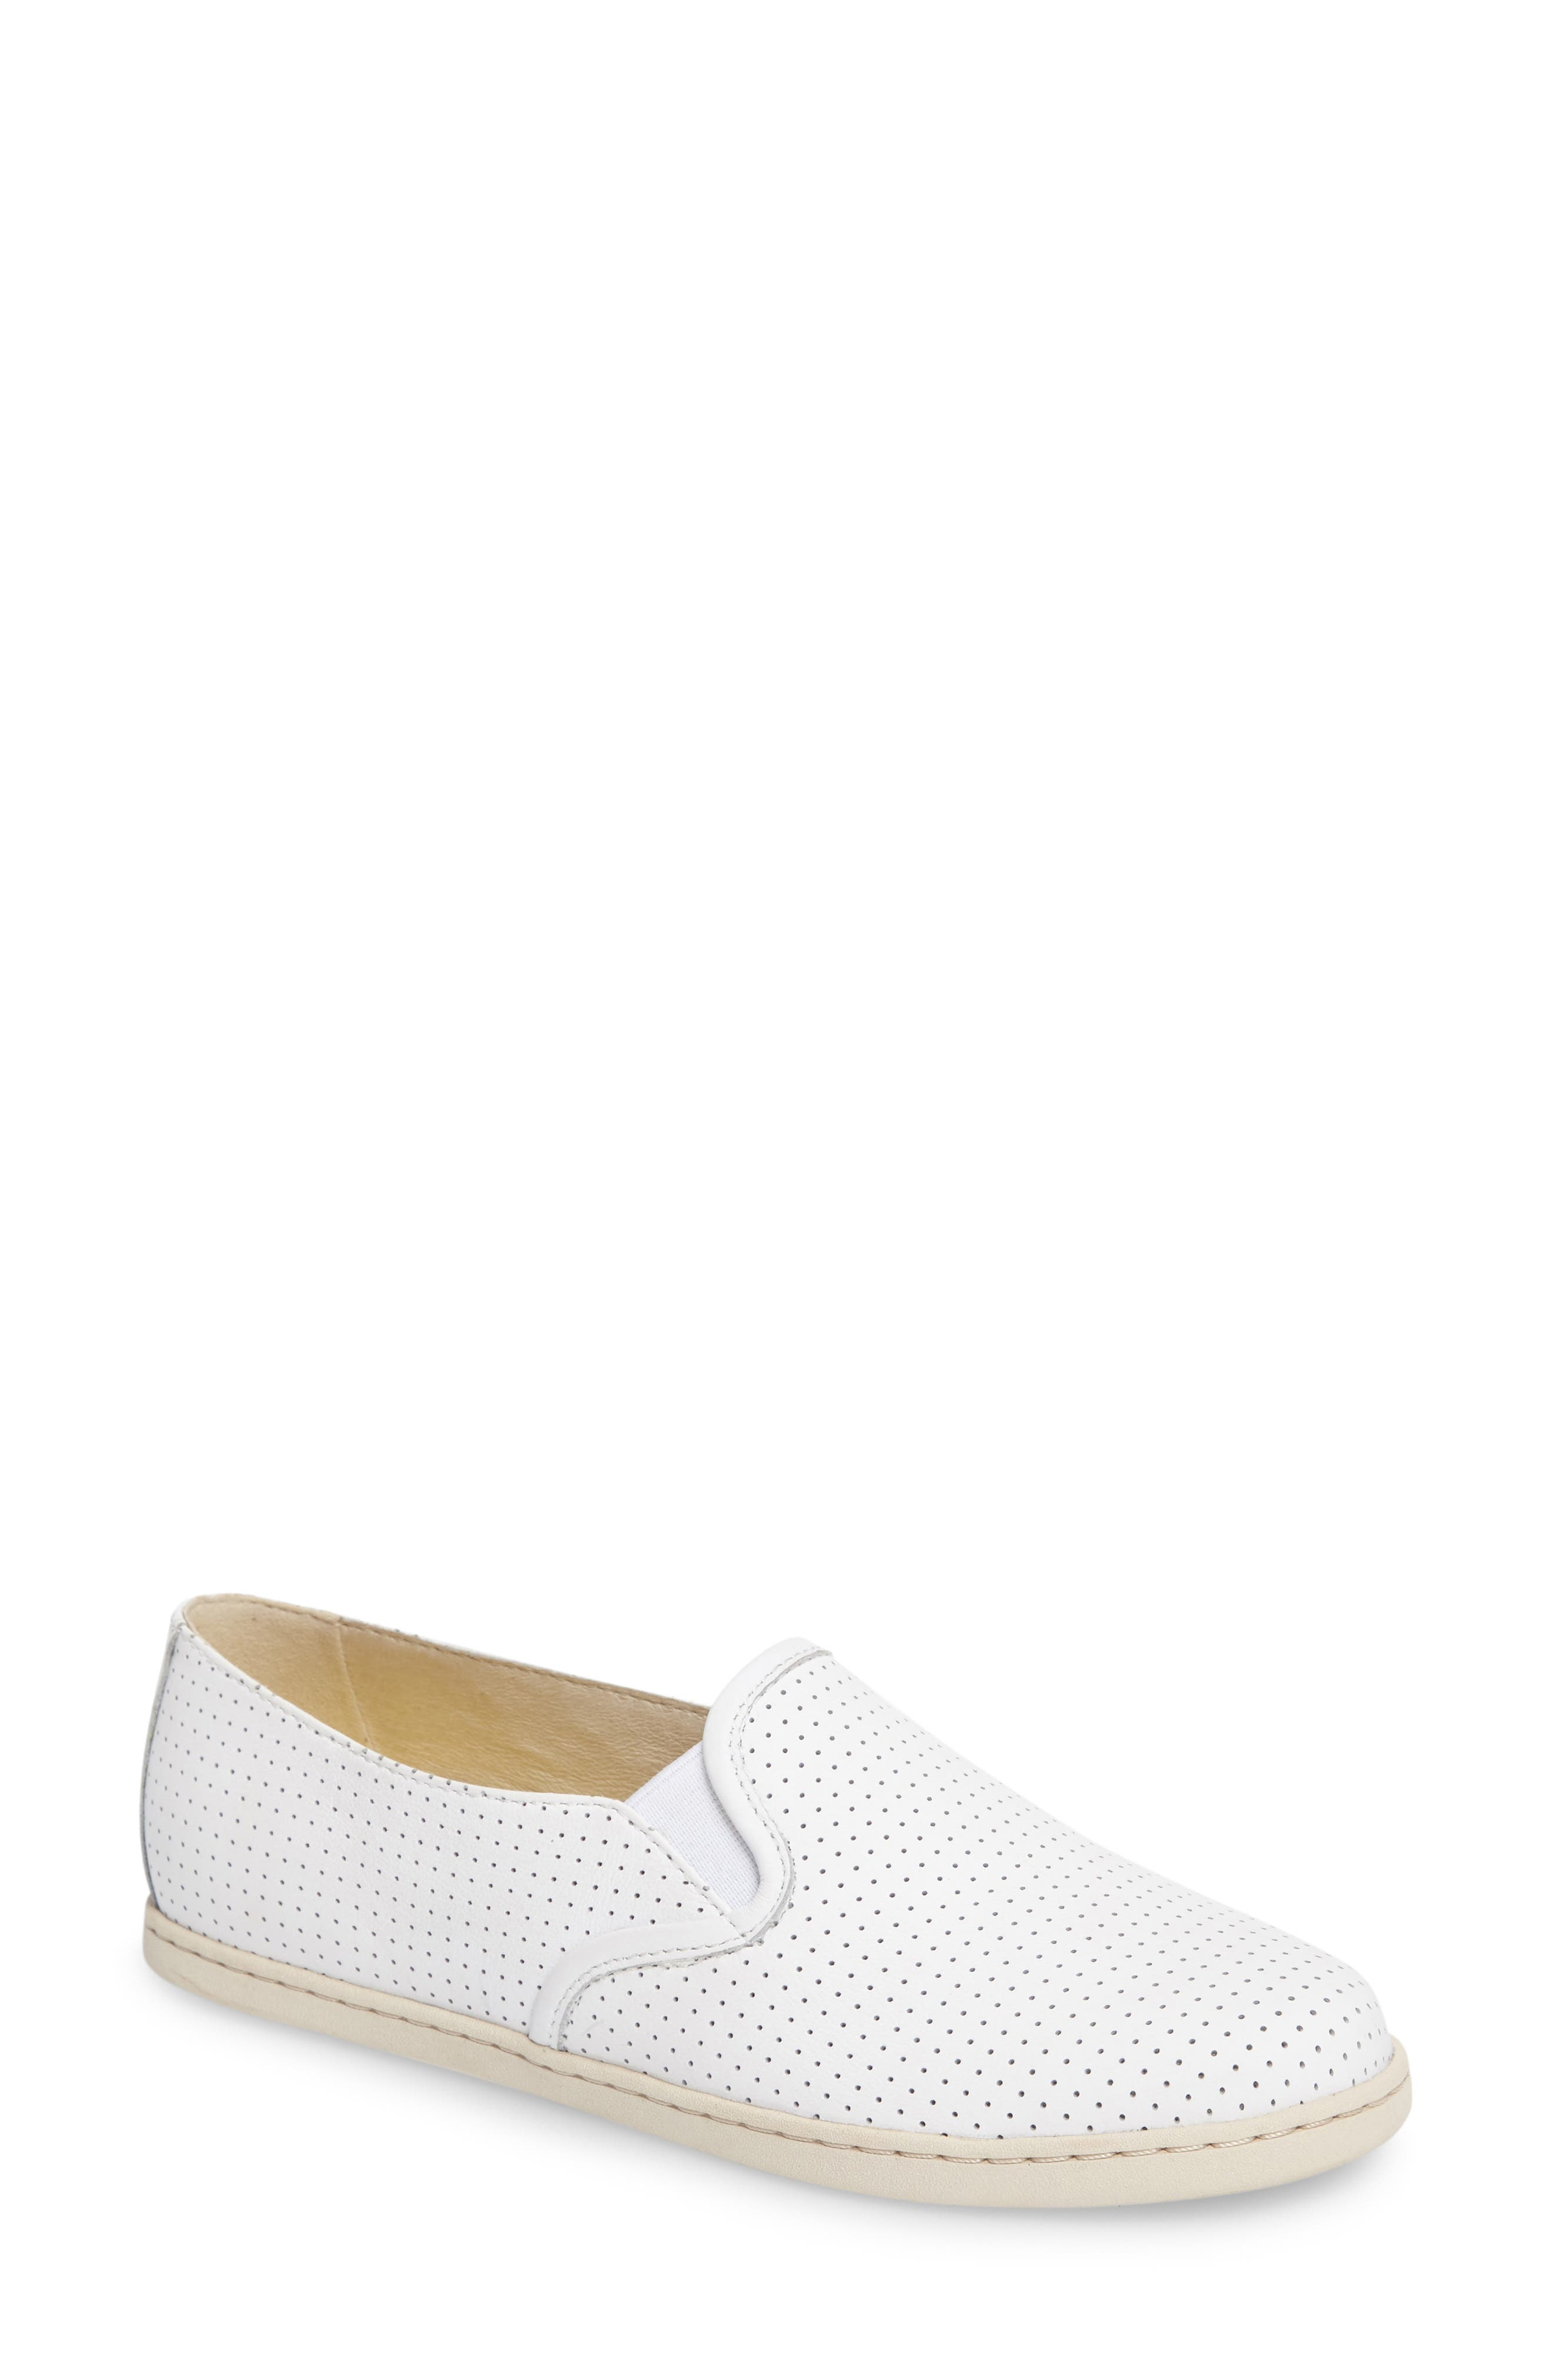 Uno Perforated Slip-On Sneaker,                         Main,                         color, 100